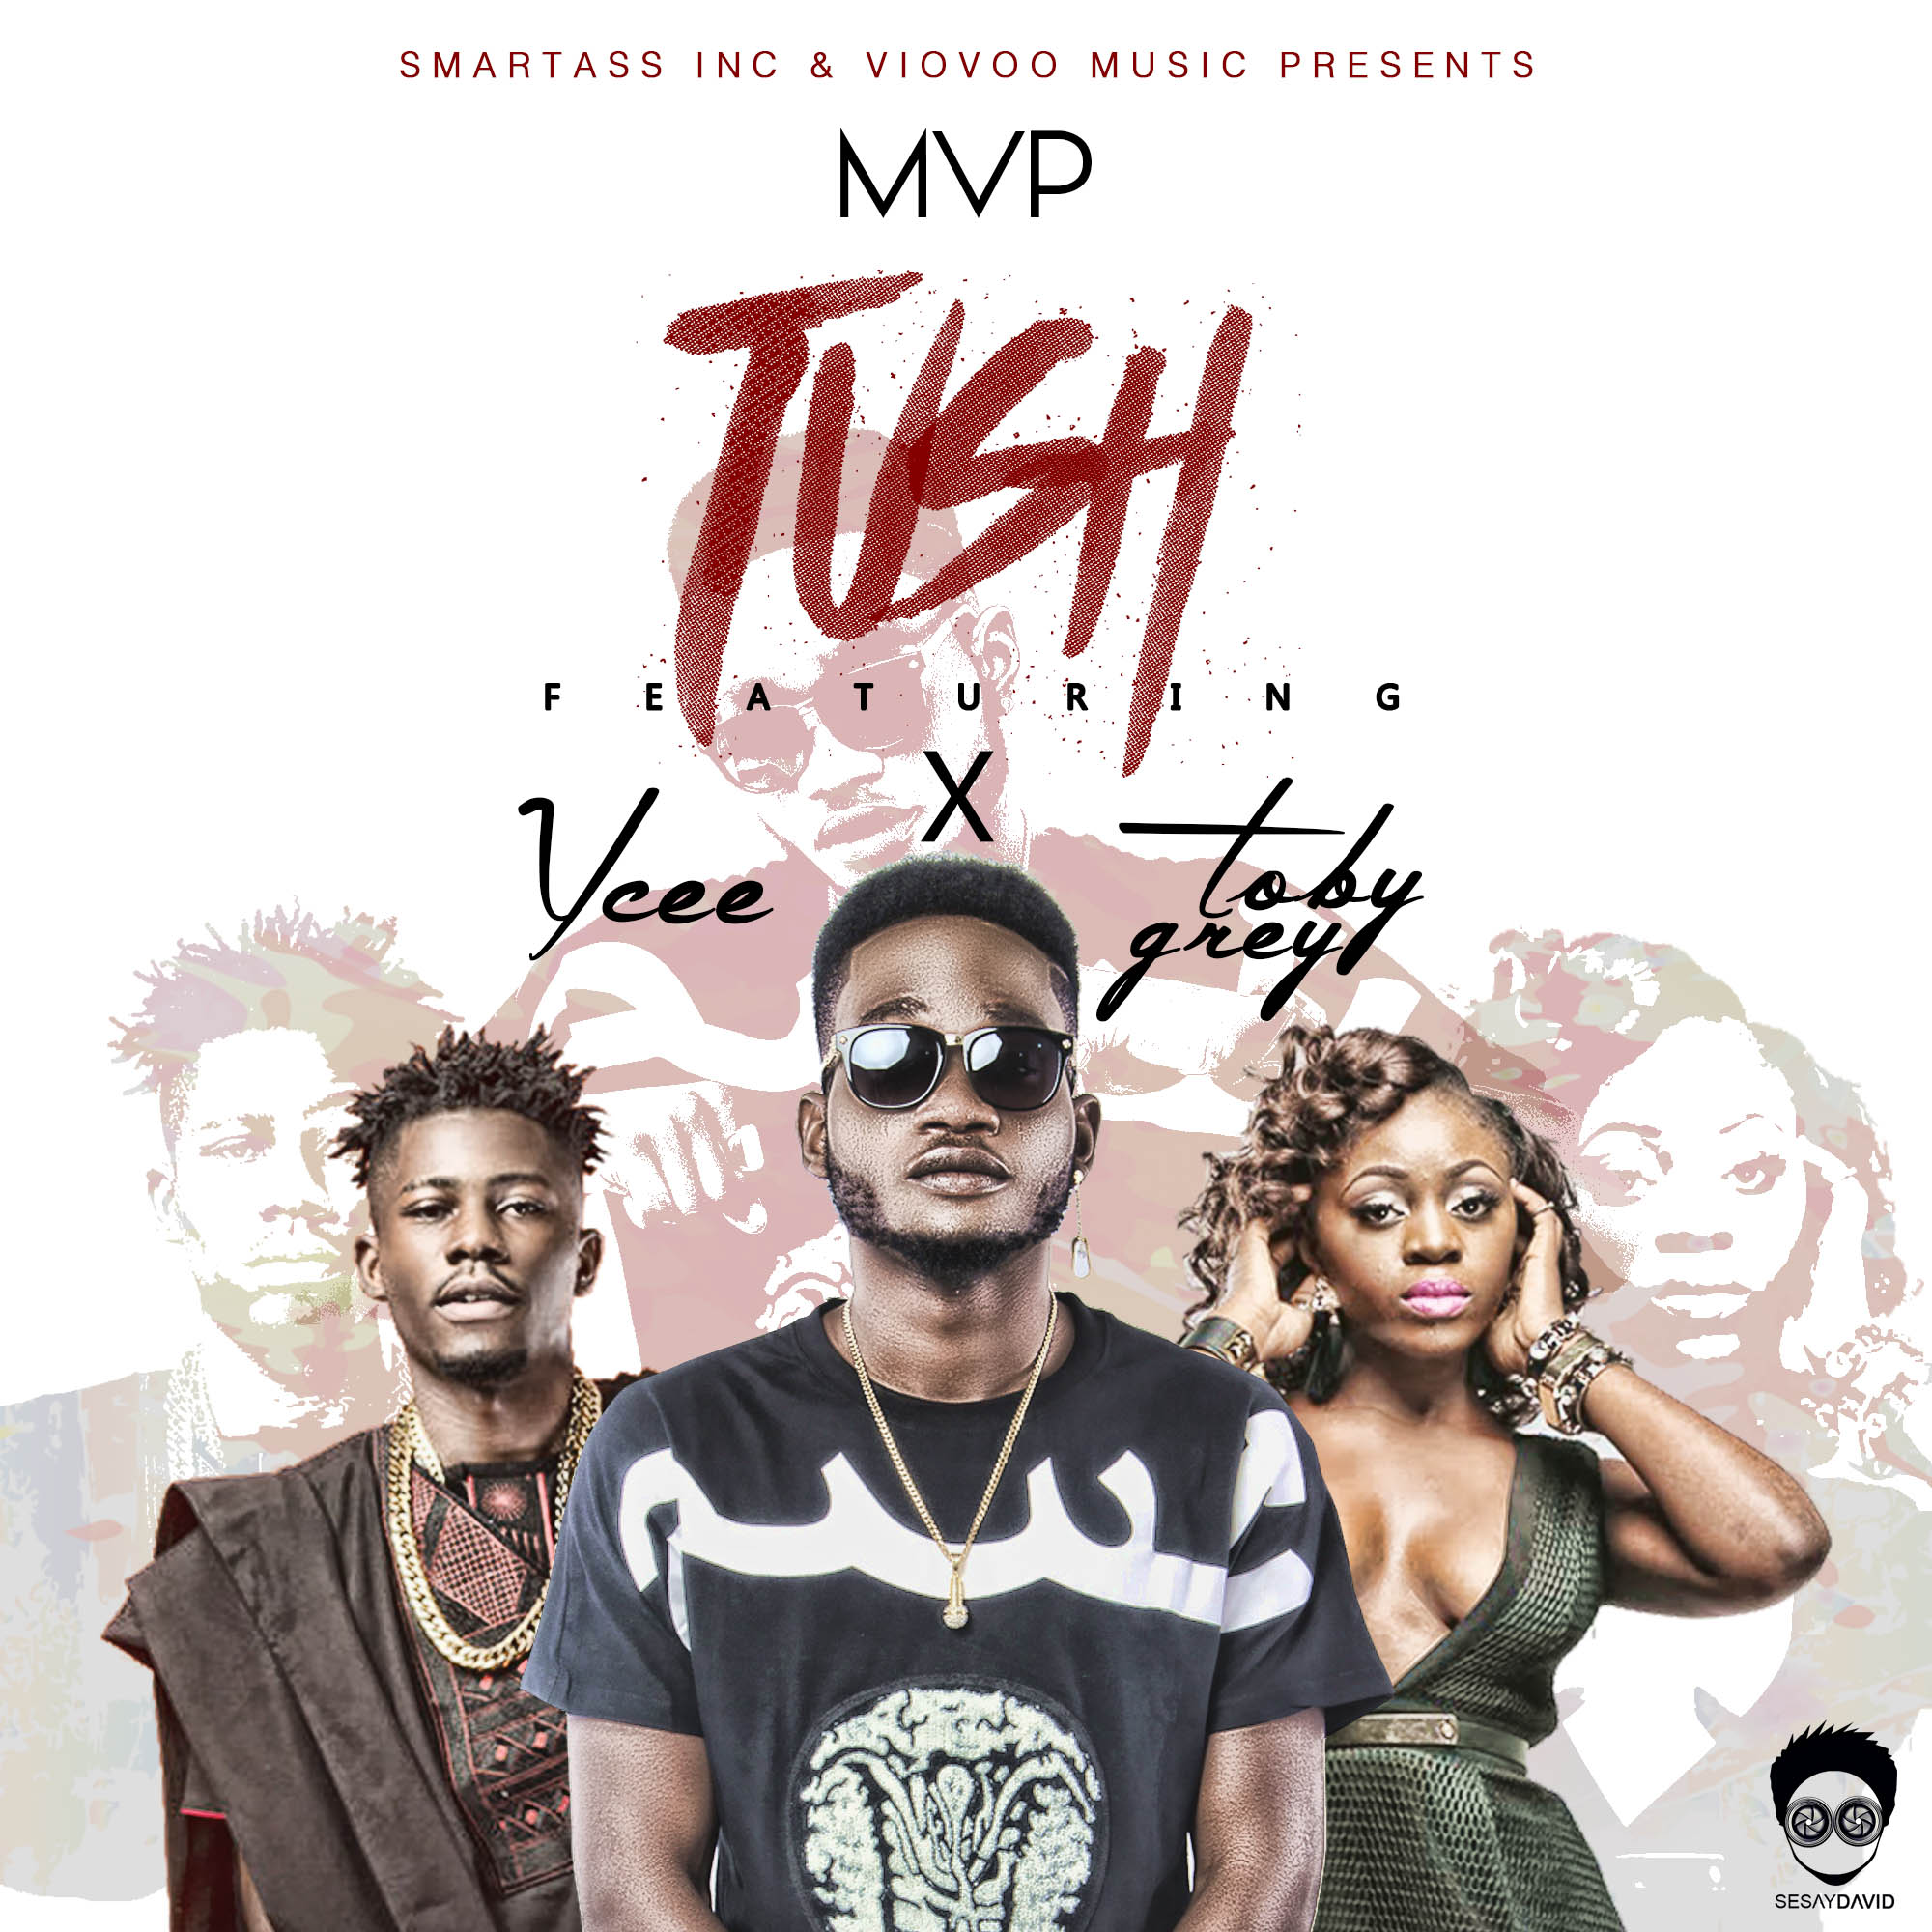 MVP ft. Toby Grey X Ycee - Tush